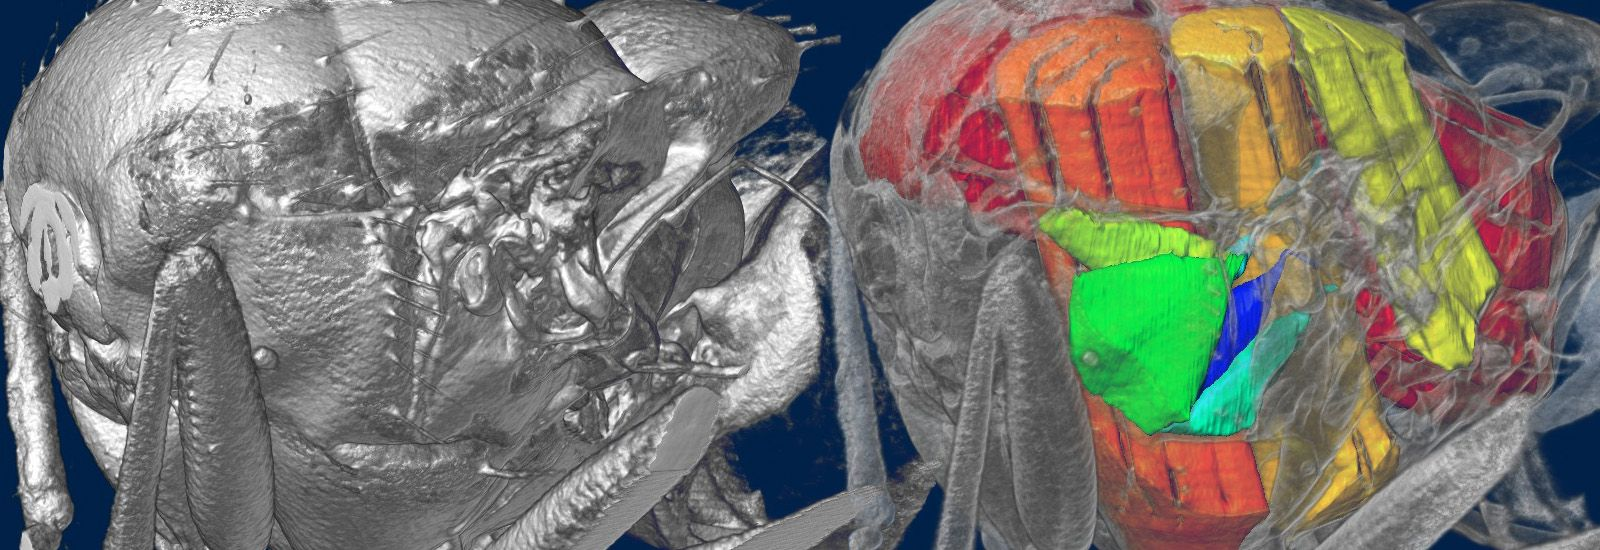 A 3D x-ray of a blowfly